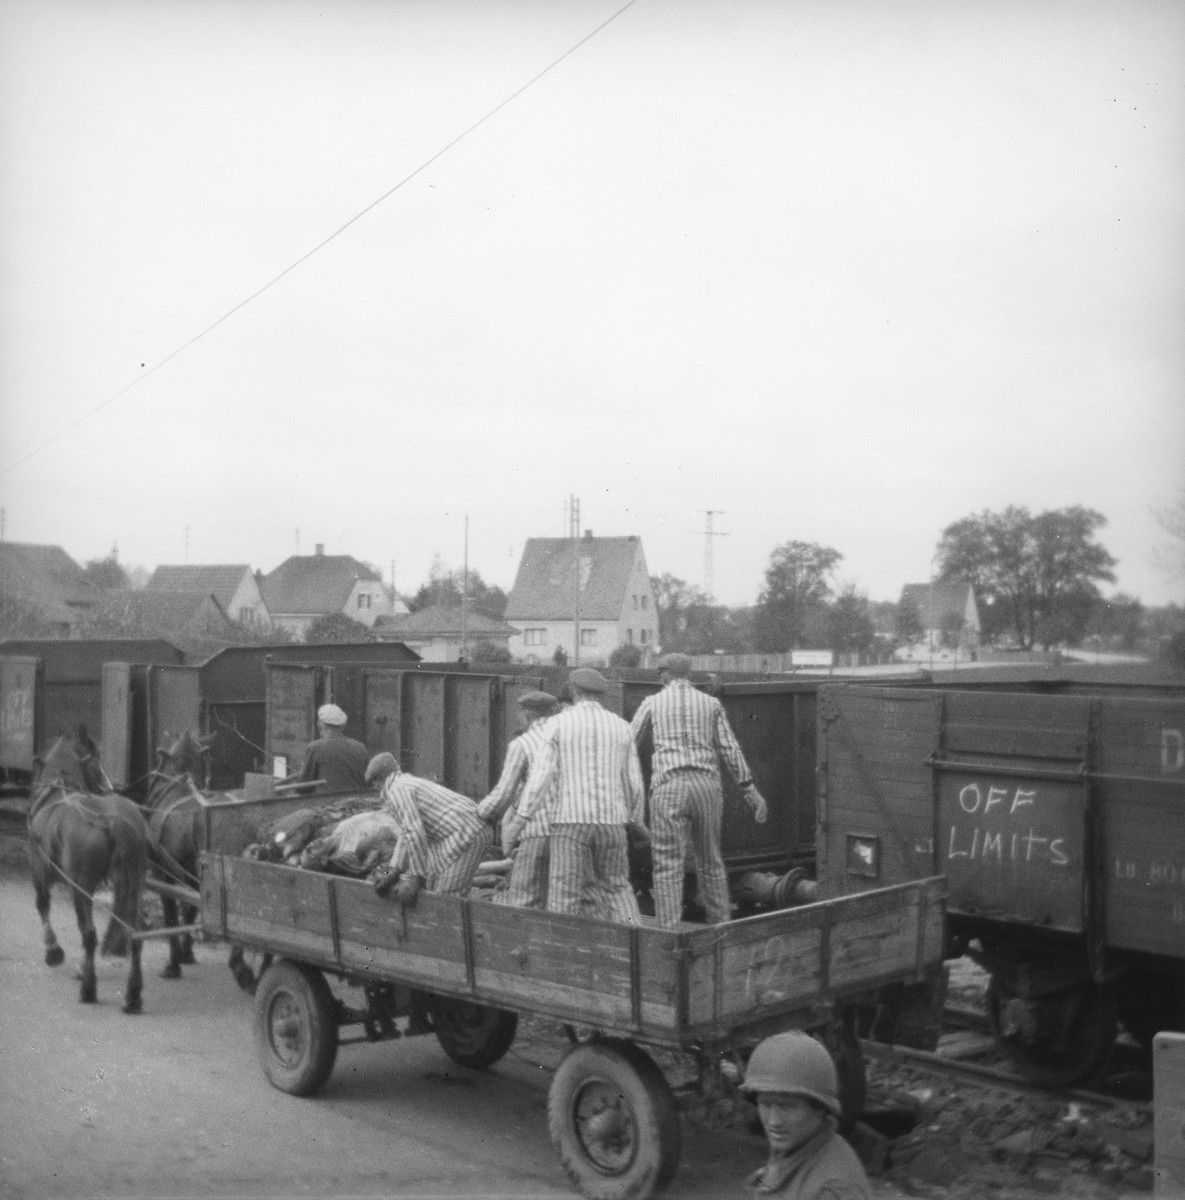 Survivors in uniform transfer corpses from a cart onto a train in preparation for their burial.